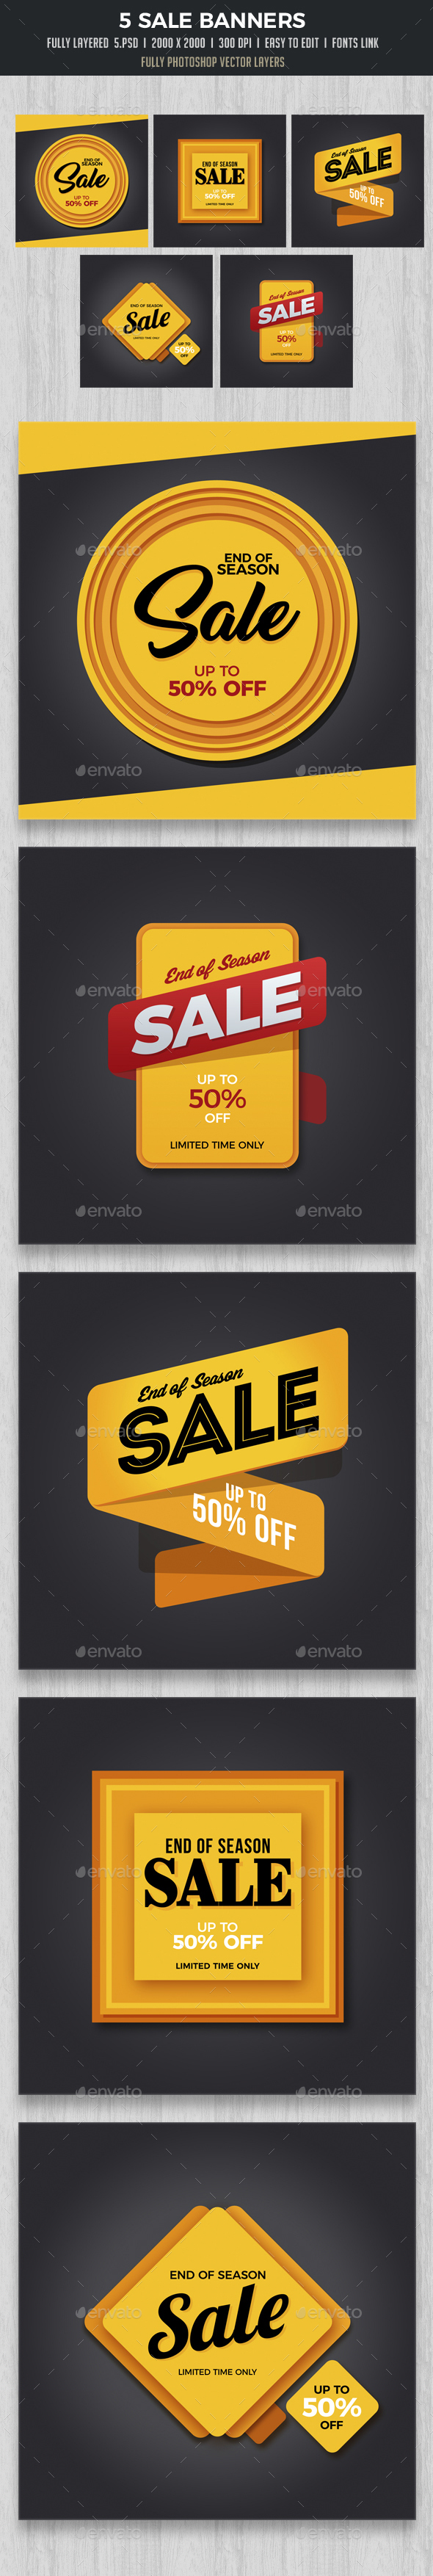 Season Sale Banners - Banners & Ads Web Elements